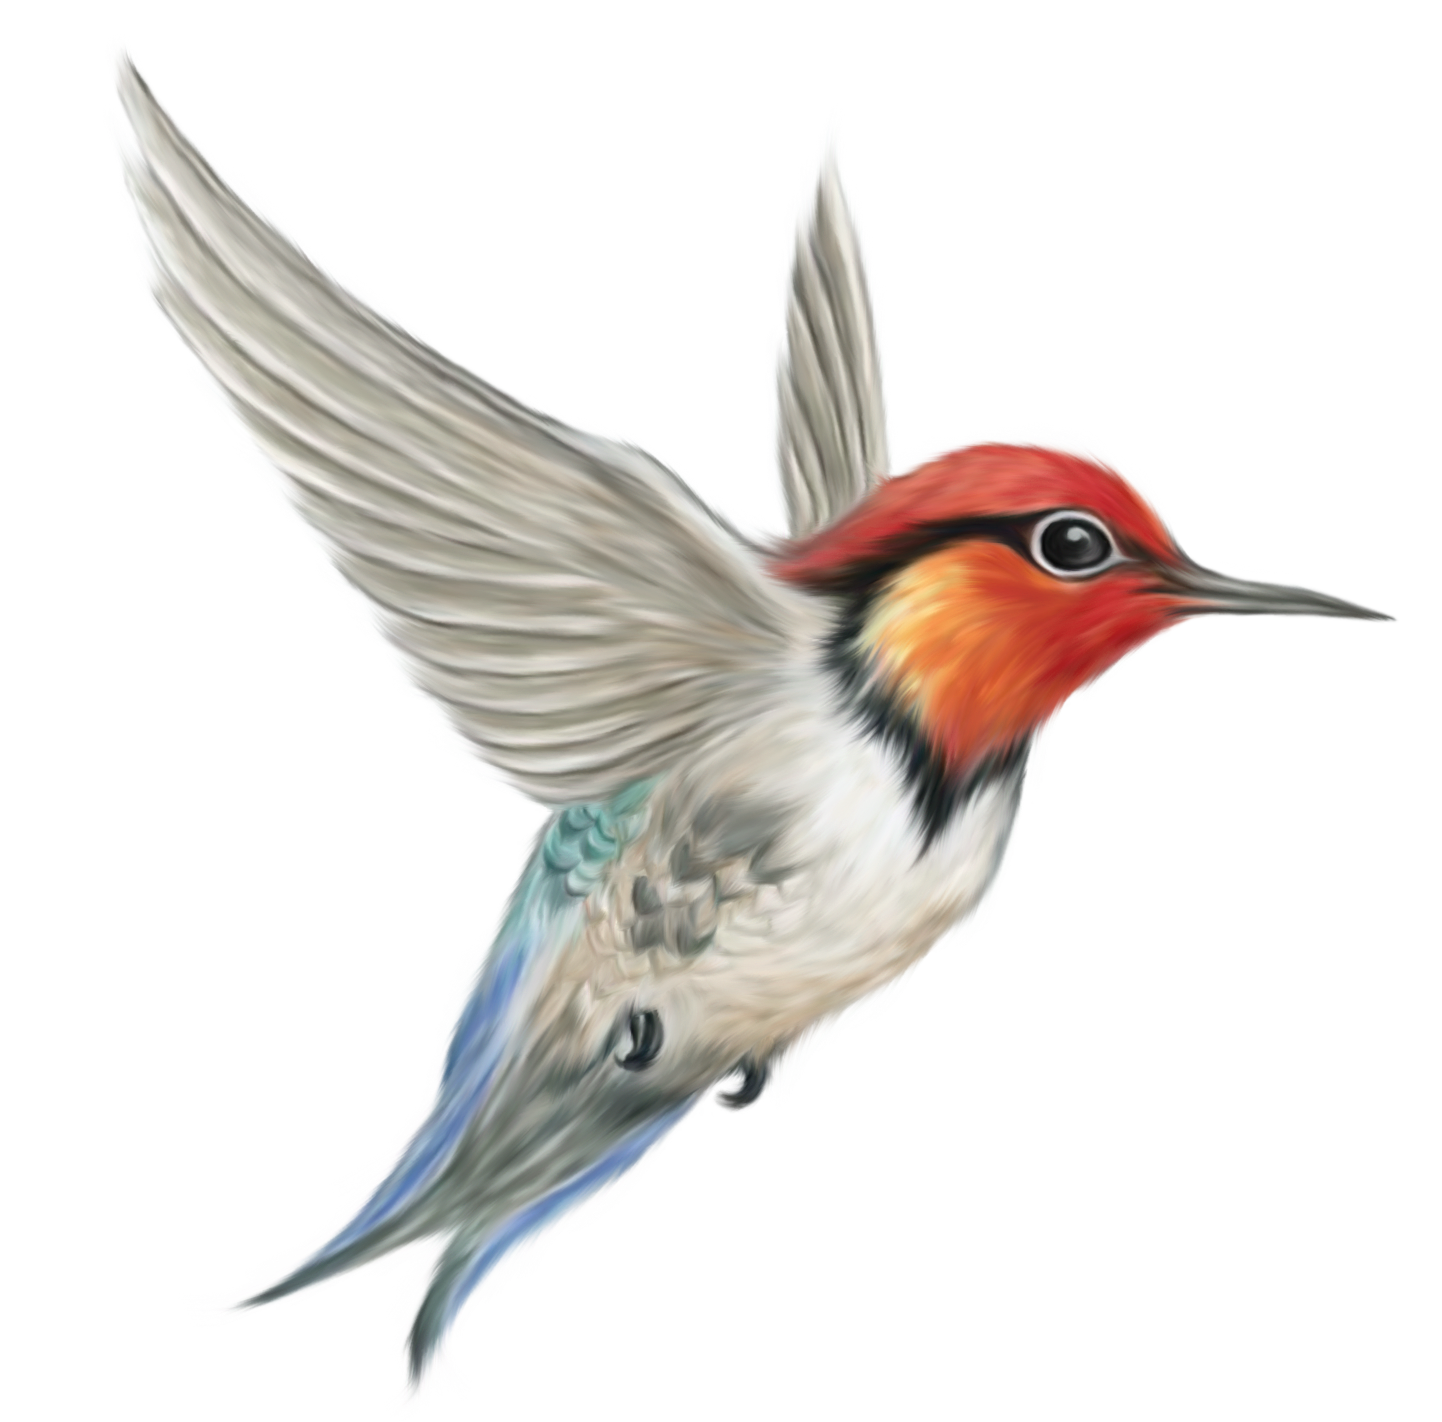 Bird Png - Cliparts.co